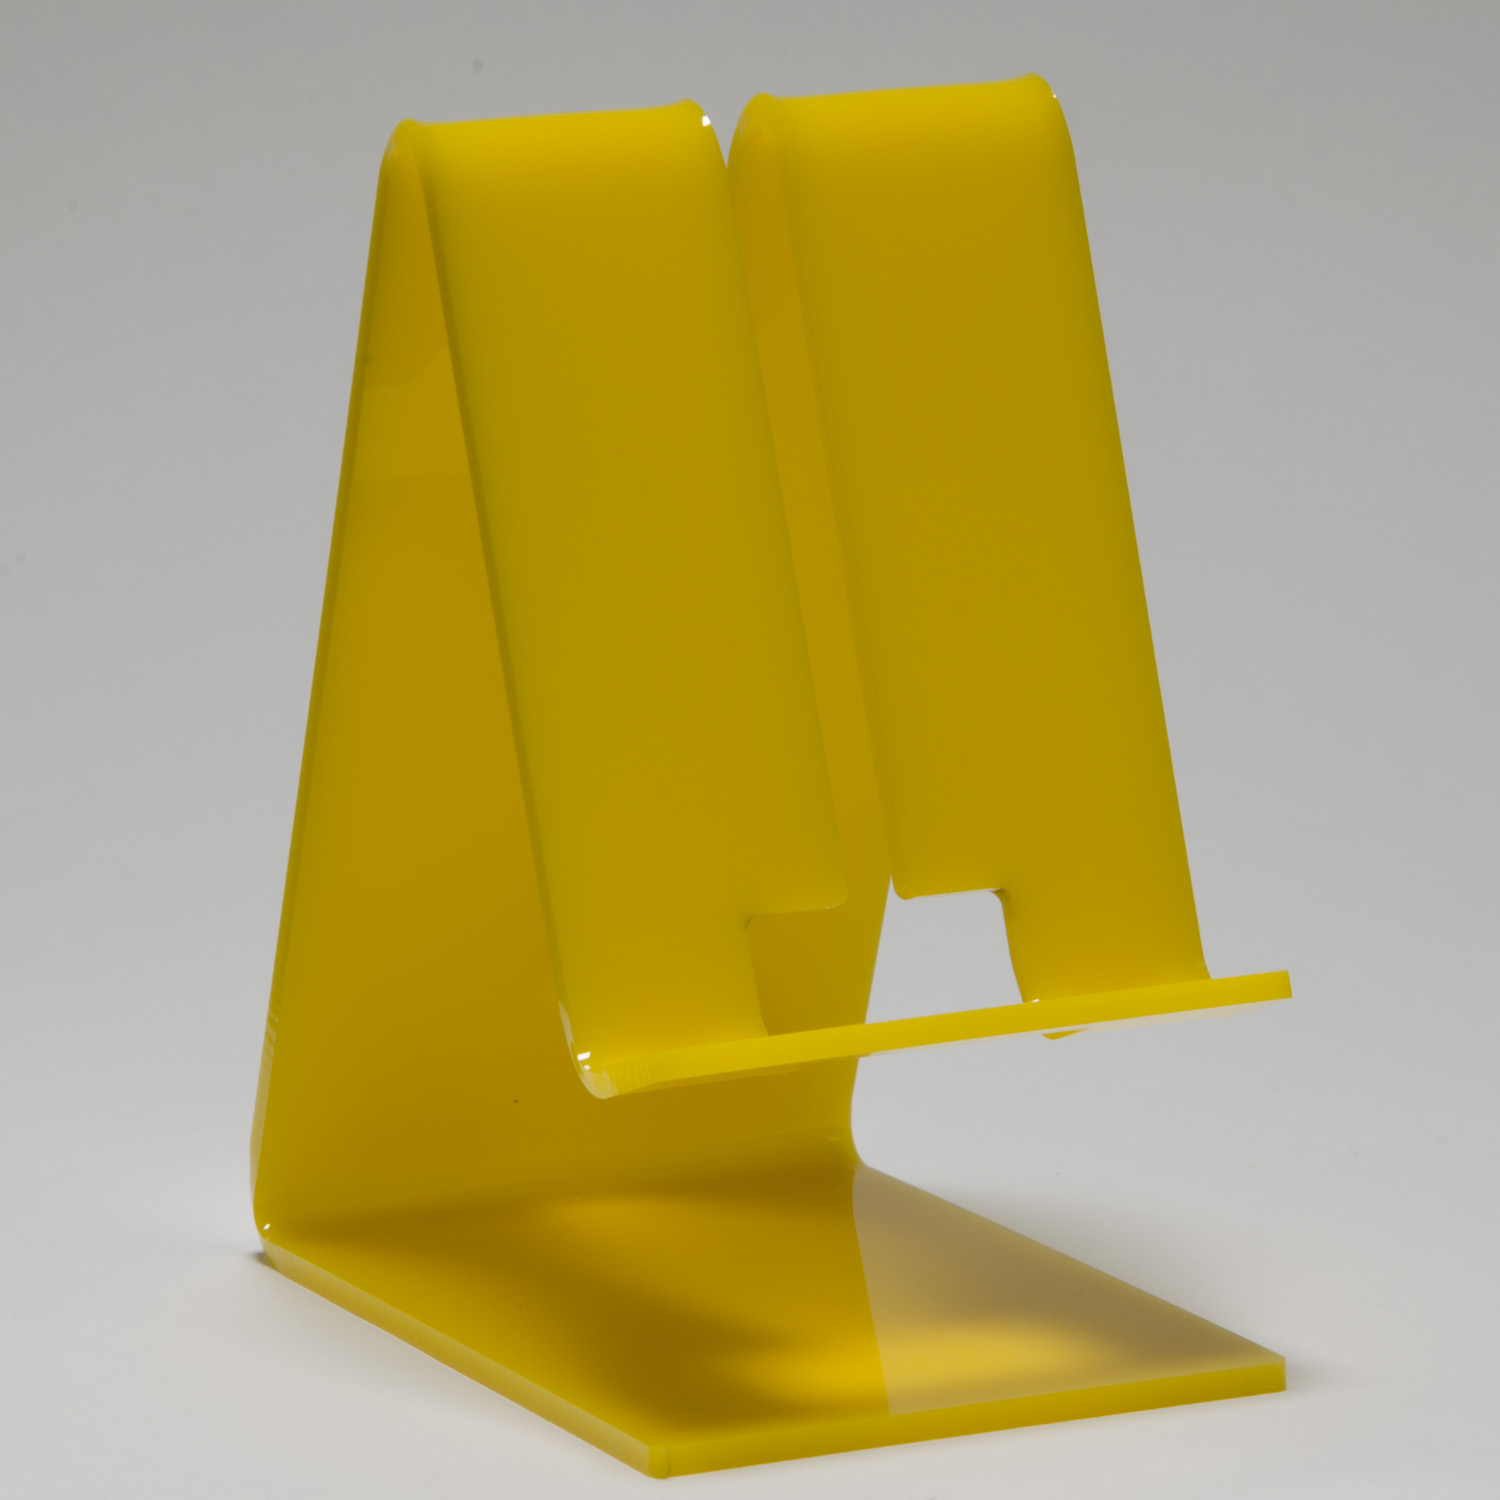 Magnetic Cell Phone Mount >> Cell Phone Stand - Yellow - Buy Acrylic Displays   Shop ...